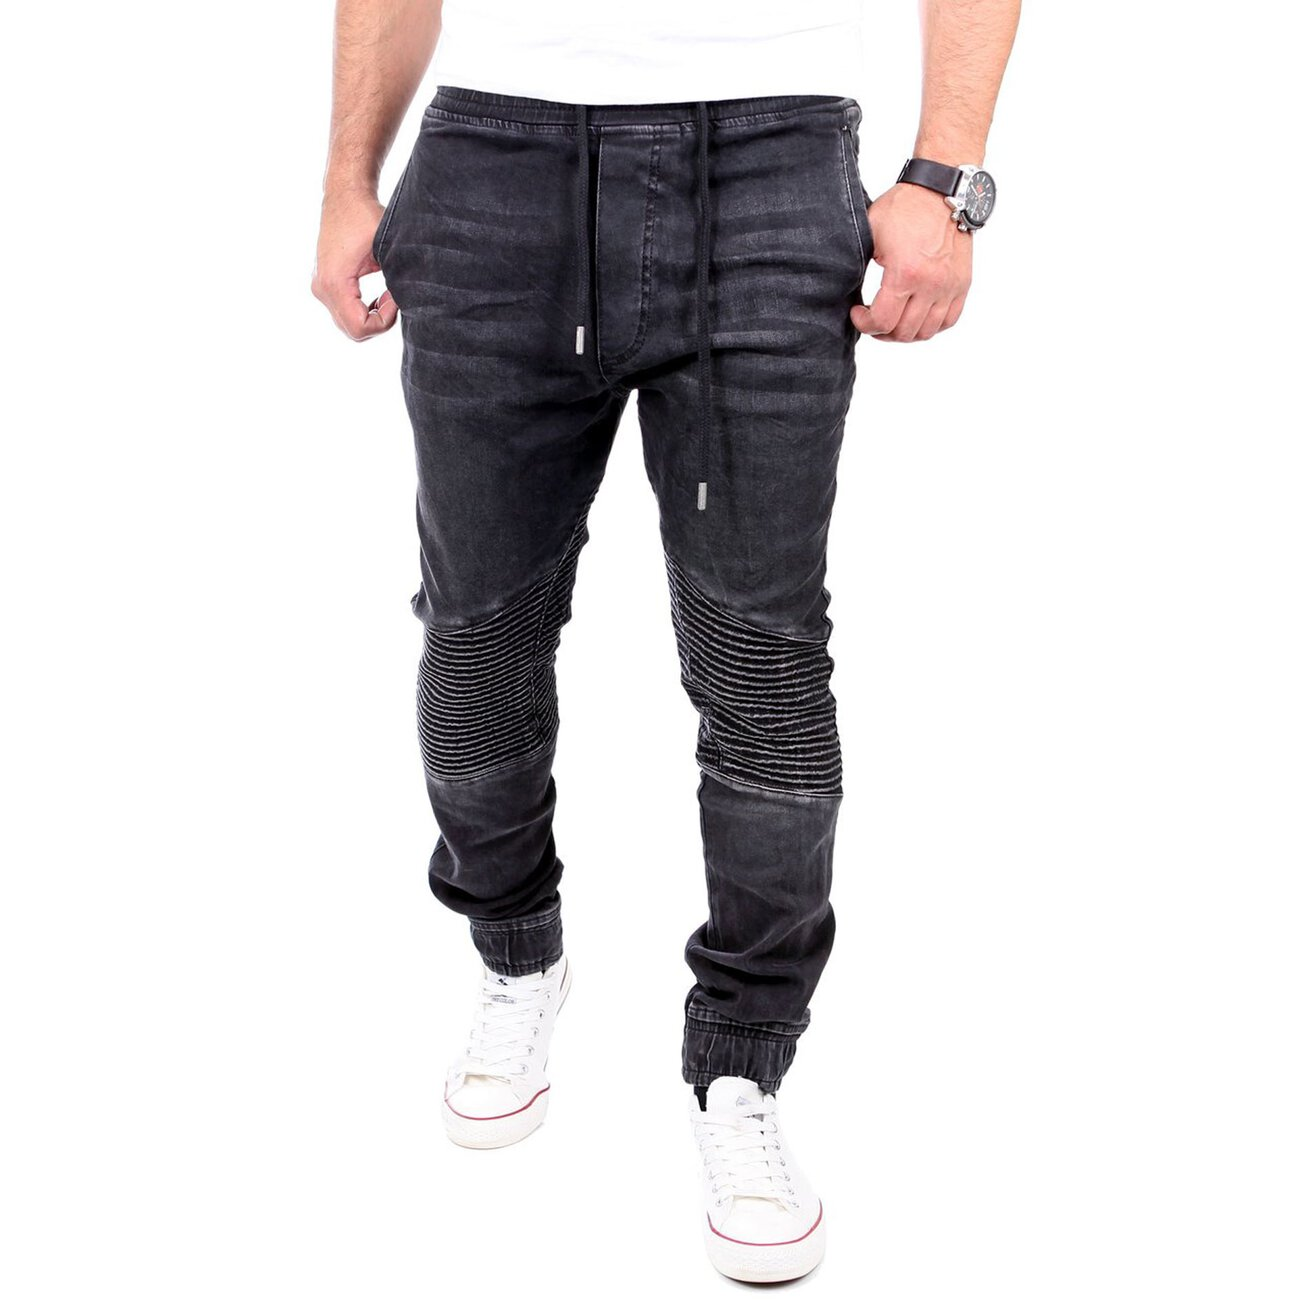 reslad jogg jeans biker style jeans herren slim fit jogging hose. Black Bedroom Furniture Sets. Home Design Ideas